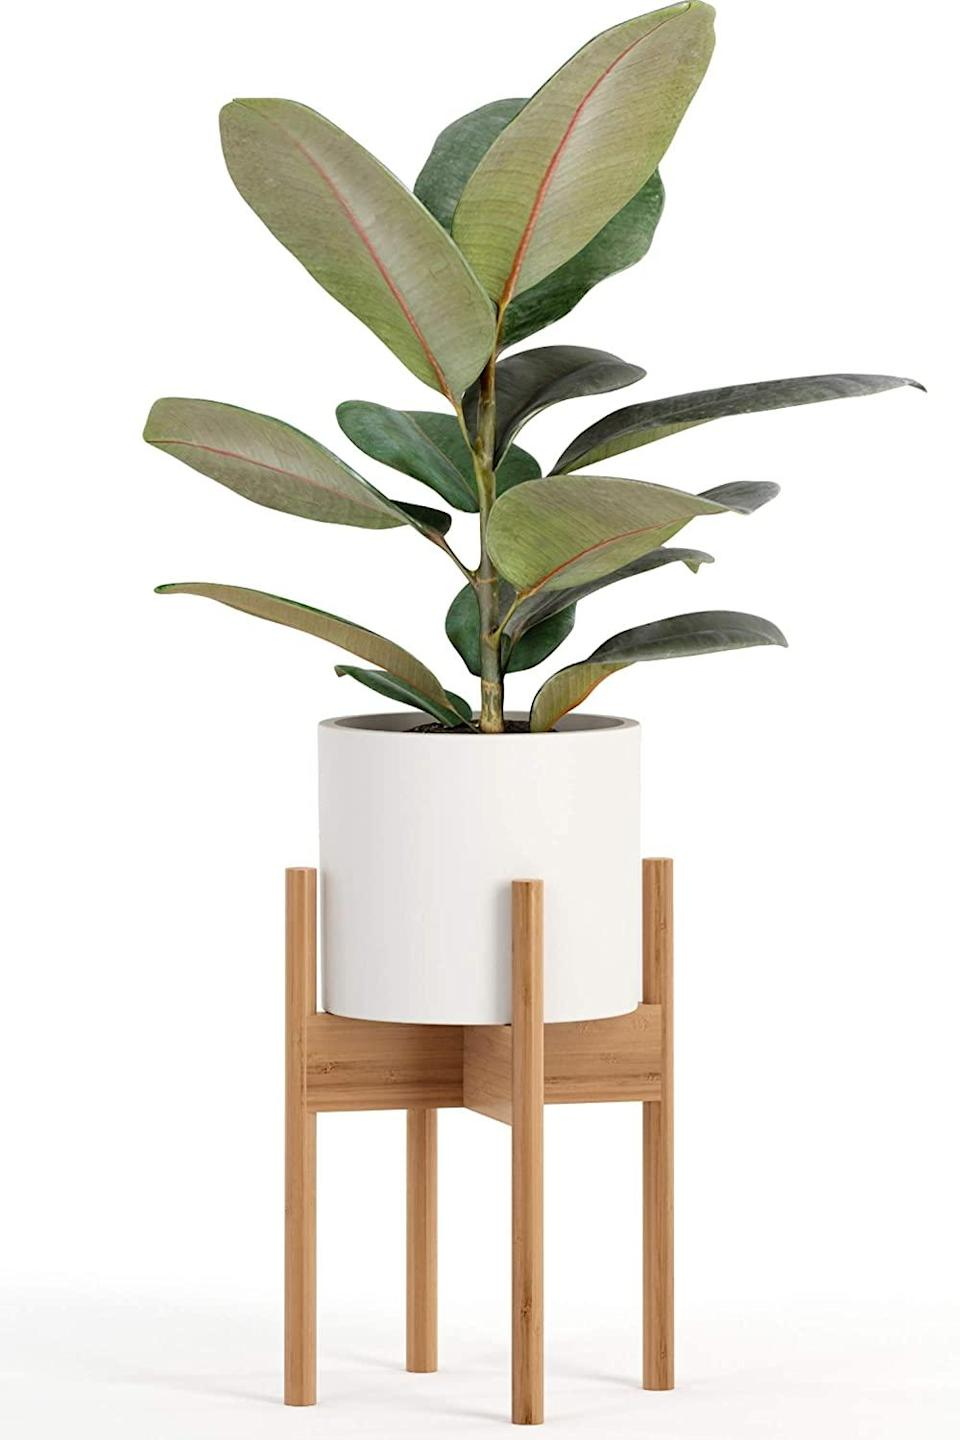 """<br><br><strong>fox & fern</strong> Fox & Fern Mid-Century Modern Plant Stand, $, available at <a href=""""https://www.amazon.com/Fox-Fern-Mid-Century-Modern-Plant/dp/B08BS4FK6T"""" rel=""""nofollow noopener"""" target=""""_blank"""" data-ylk=""""slk:Amazon"""" class=""""link rapid-noclick-resp"""">Amazon</a>"""